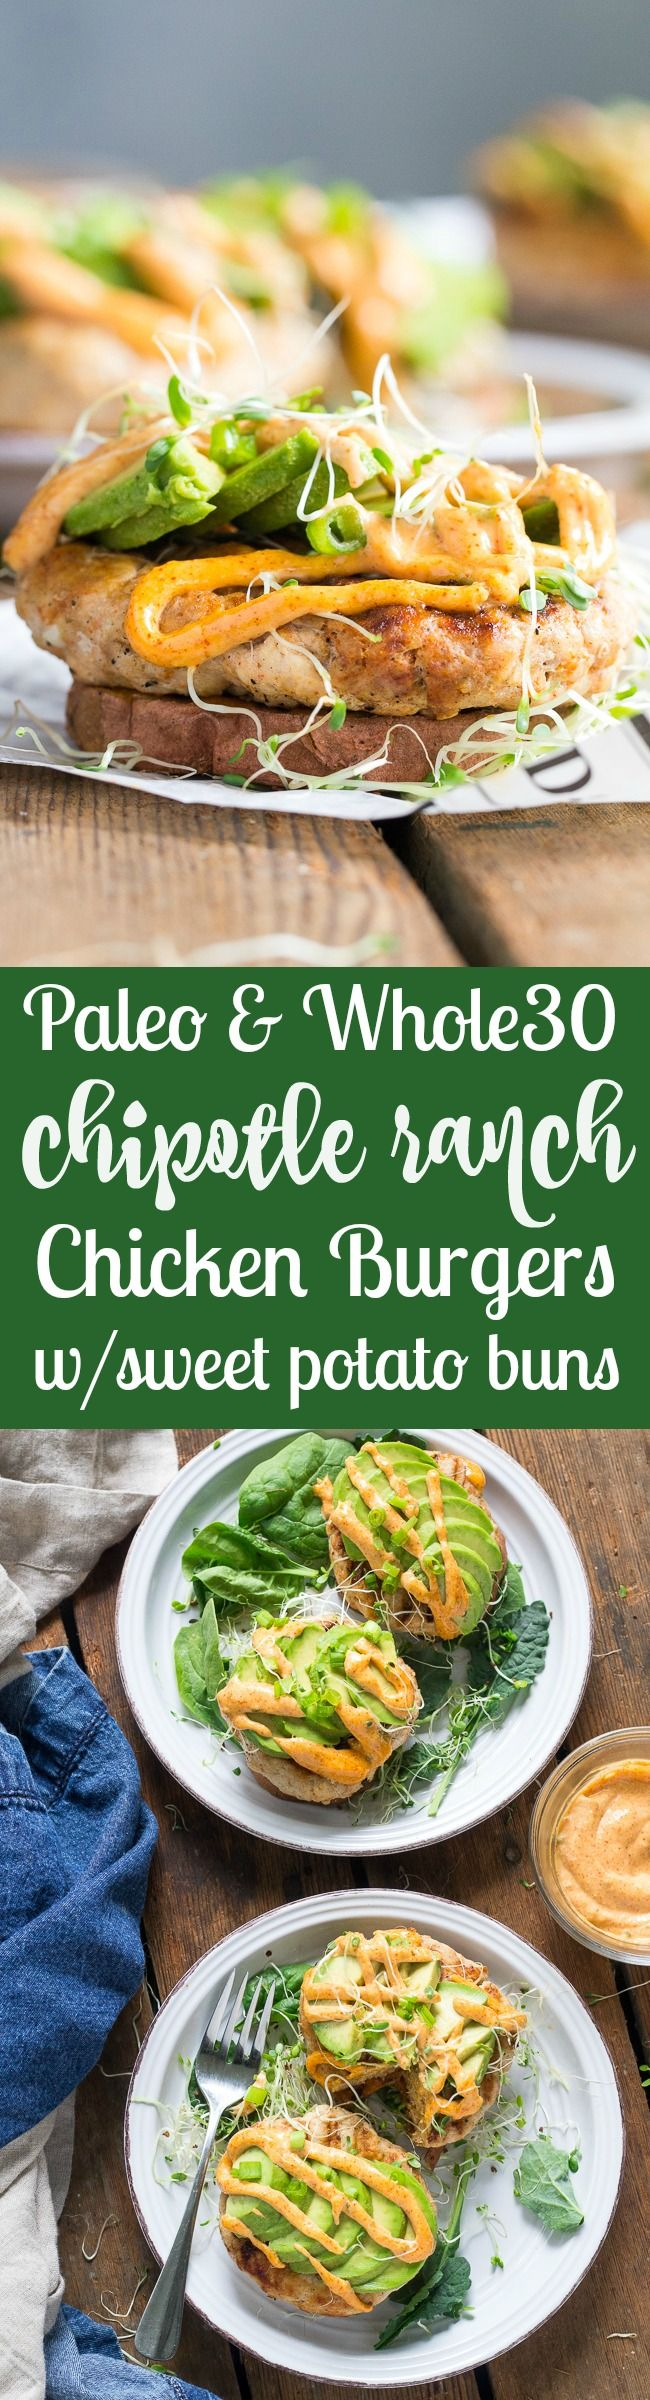 These Chipotle Ranch Chicken Burgers are loaded with your favorite flavors and perfect on a grilled sweet potato bun!  Topped with chipotle ranch sauce, avocado and sprouts for a delicious, fun, and h (Paleo Recipes Chicken)